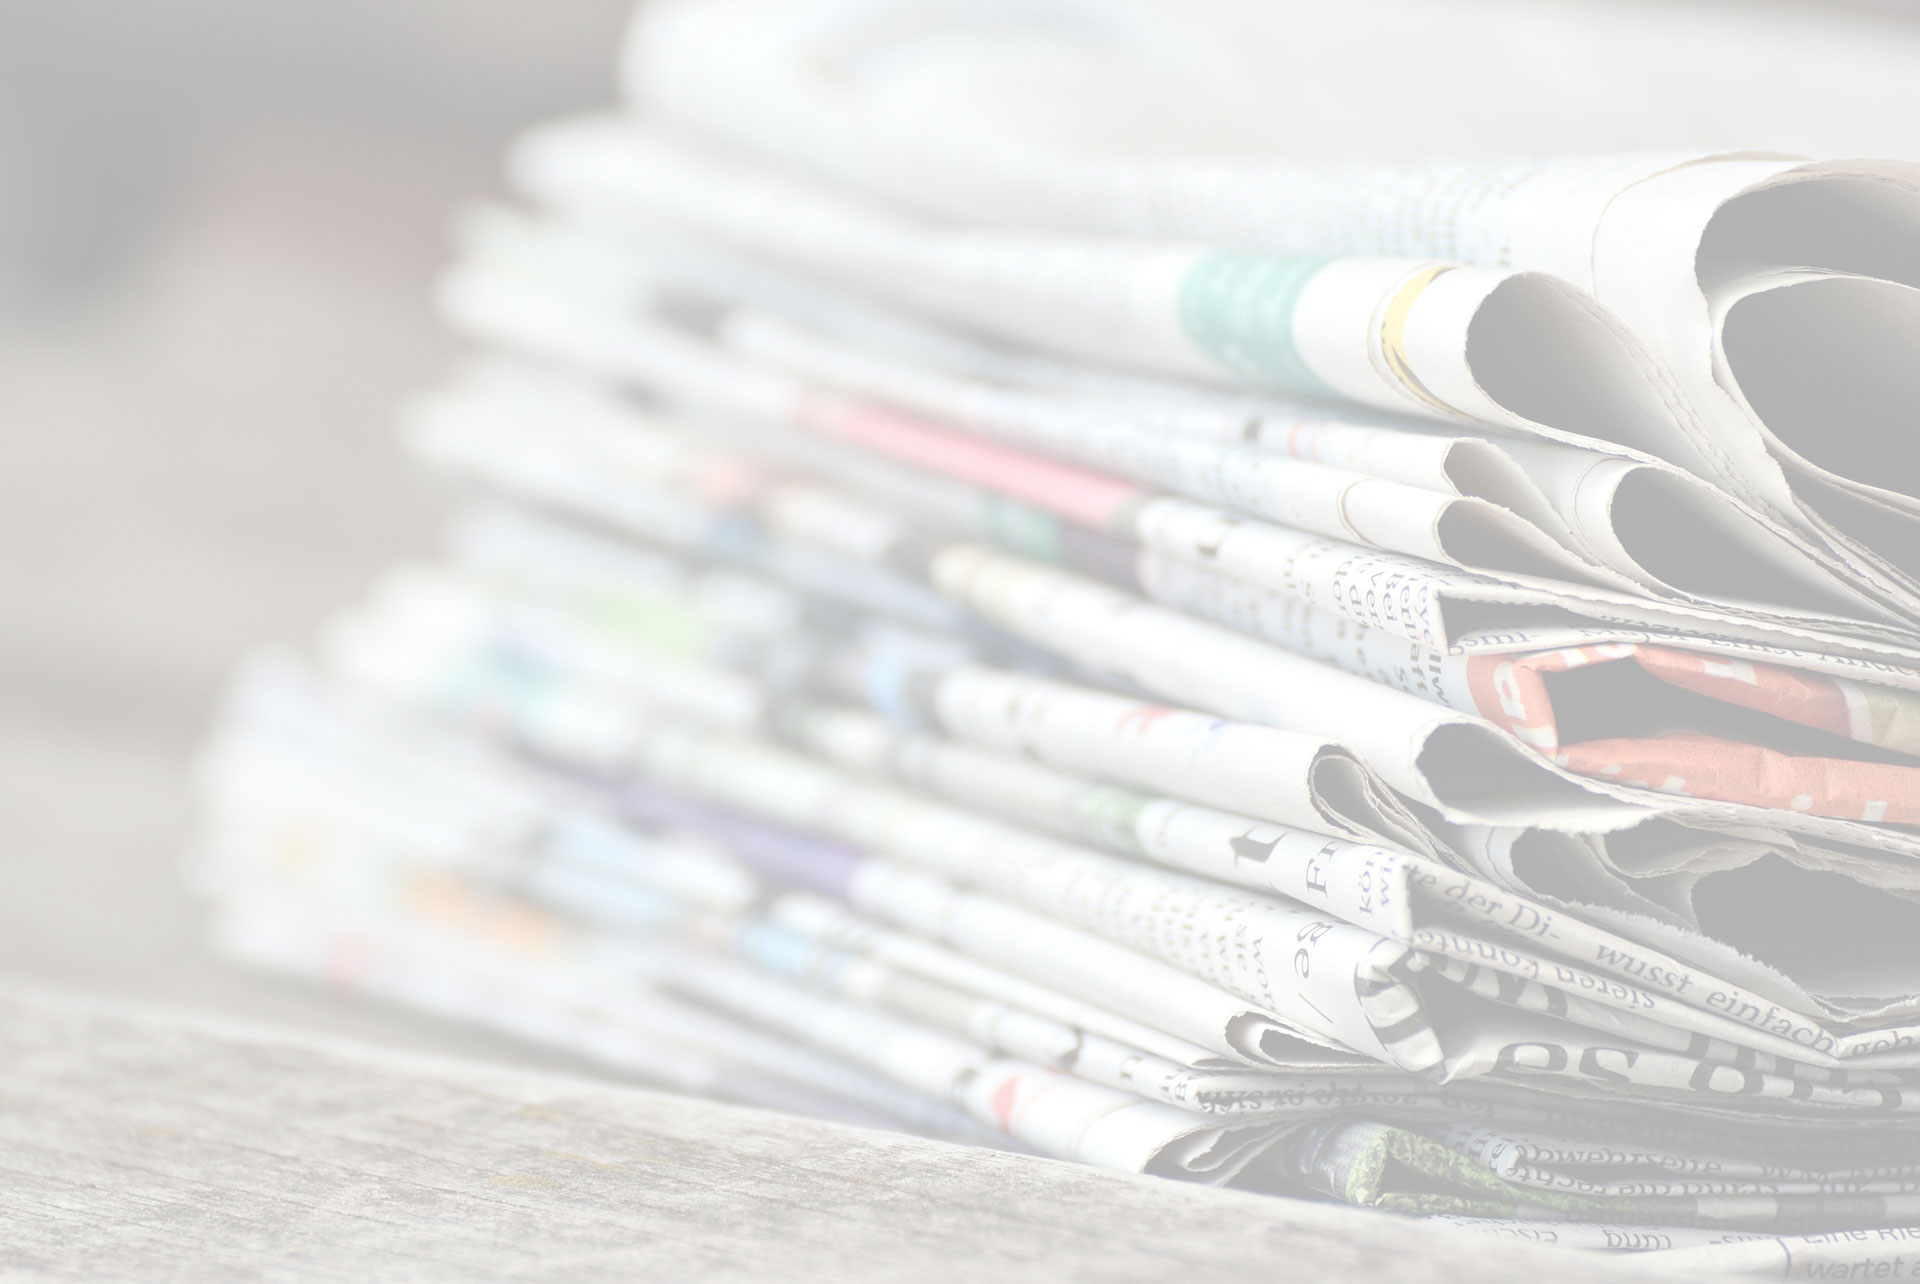 Pierre Moscovici